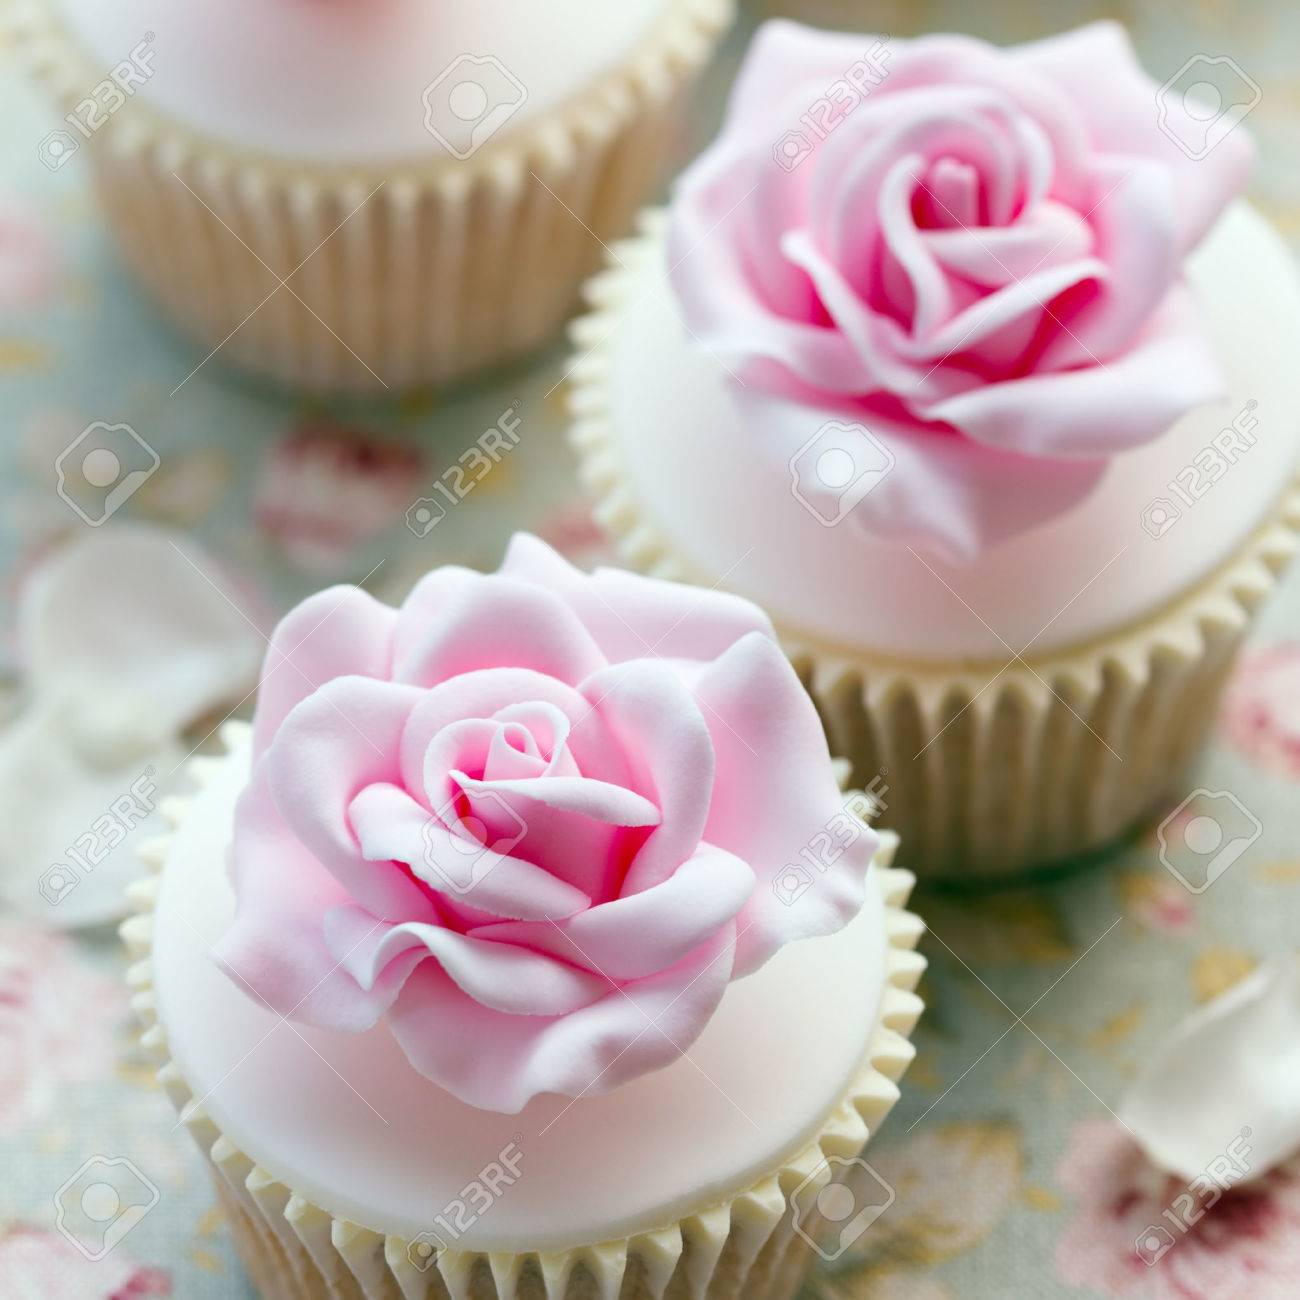 Hochzeit Cupcakes Rose Cupcakes For A Wedding